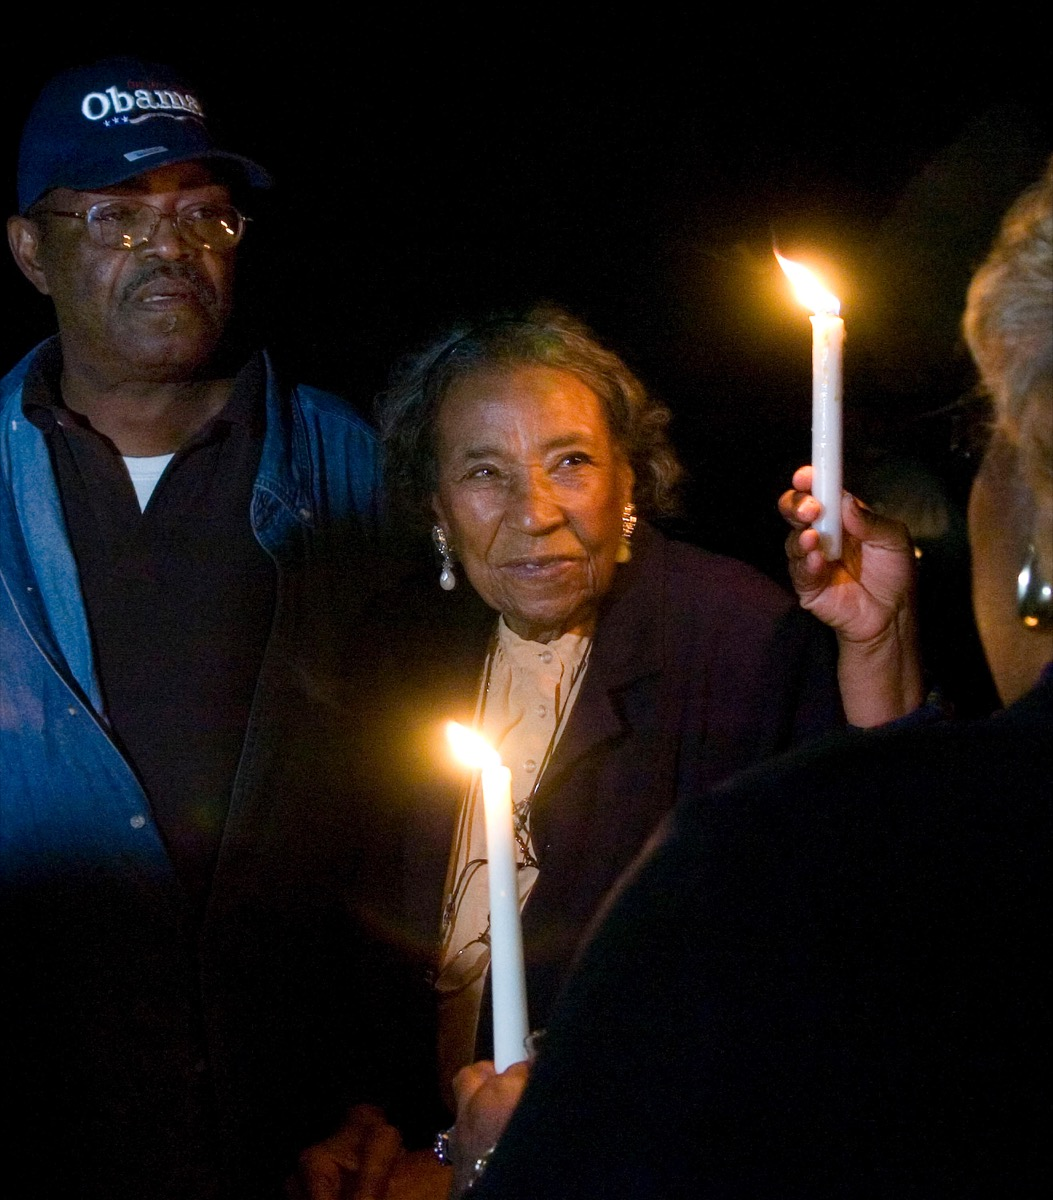 Civil Rights veteran foot soldier Amelia Boynton Robinson, 97, participates in a candle light vigil at the foot of the Edmund Pettus Bridge before the election returns in Selma, Alabama, USA, on Tuesday, November 4